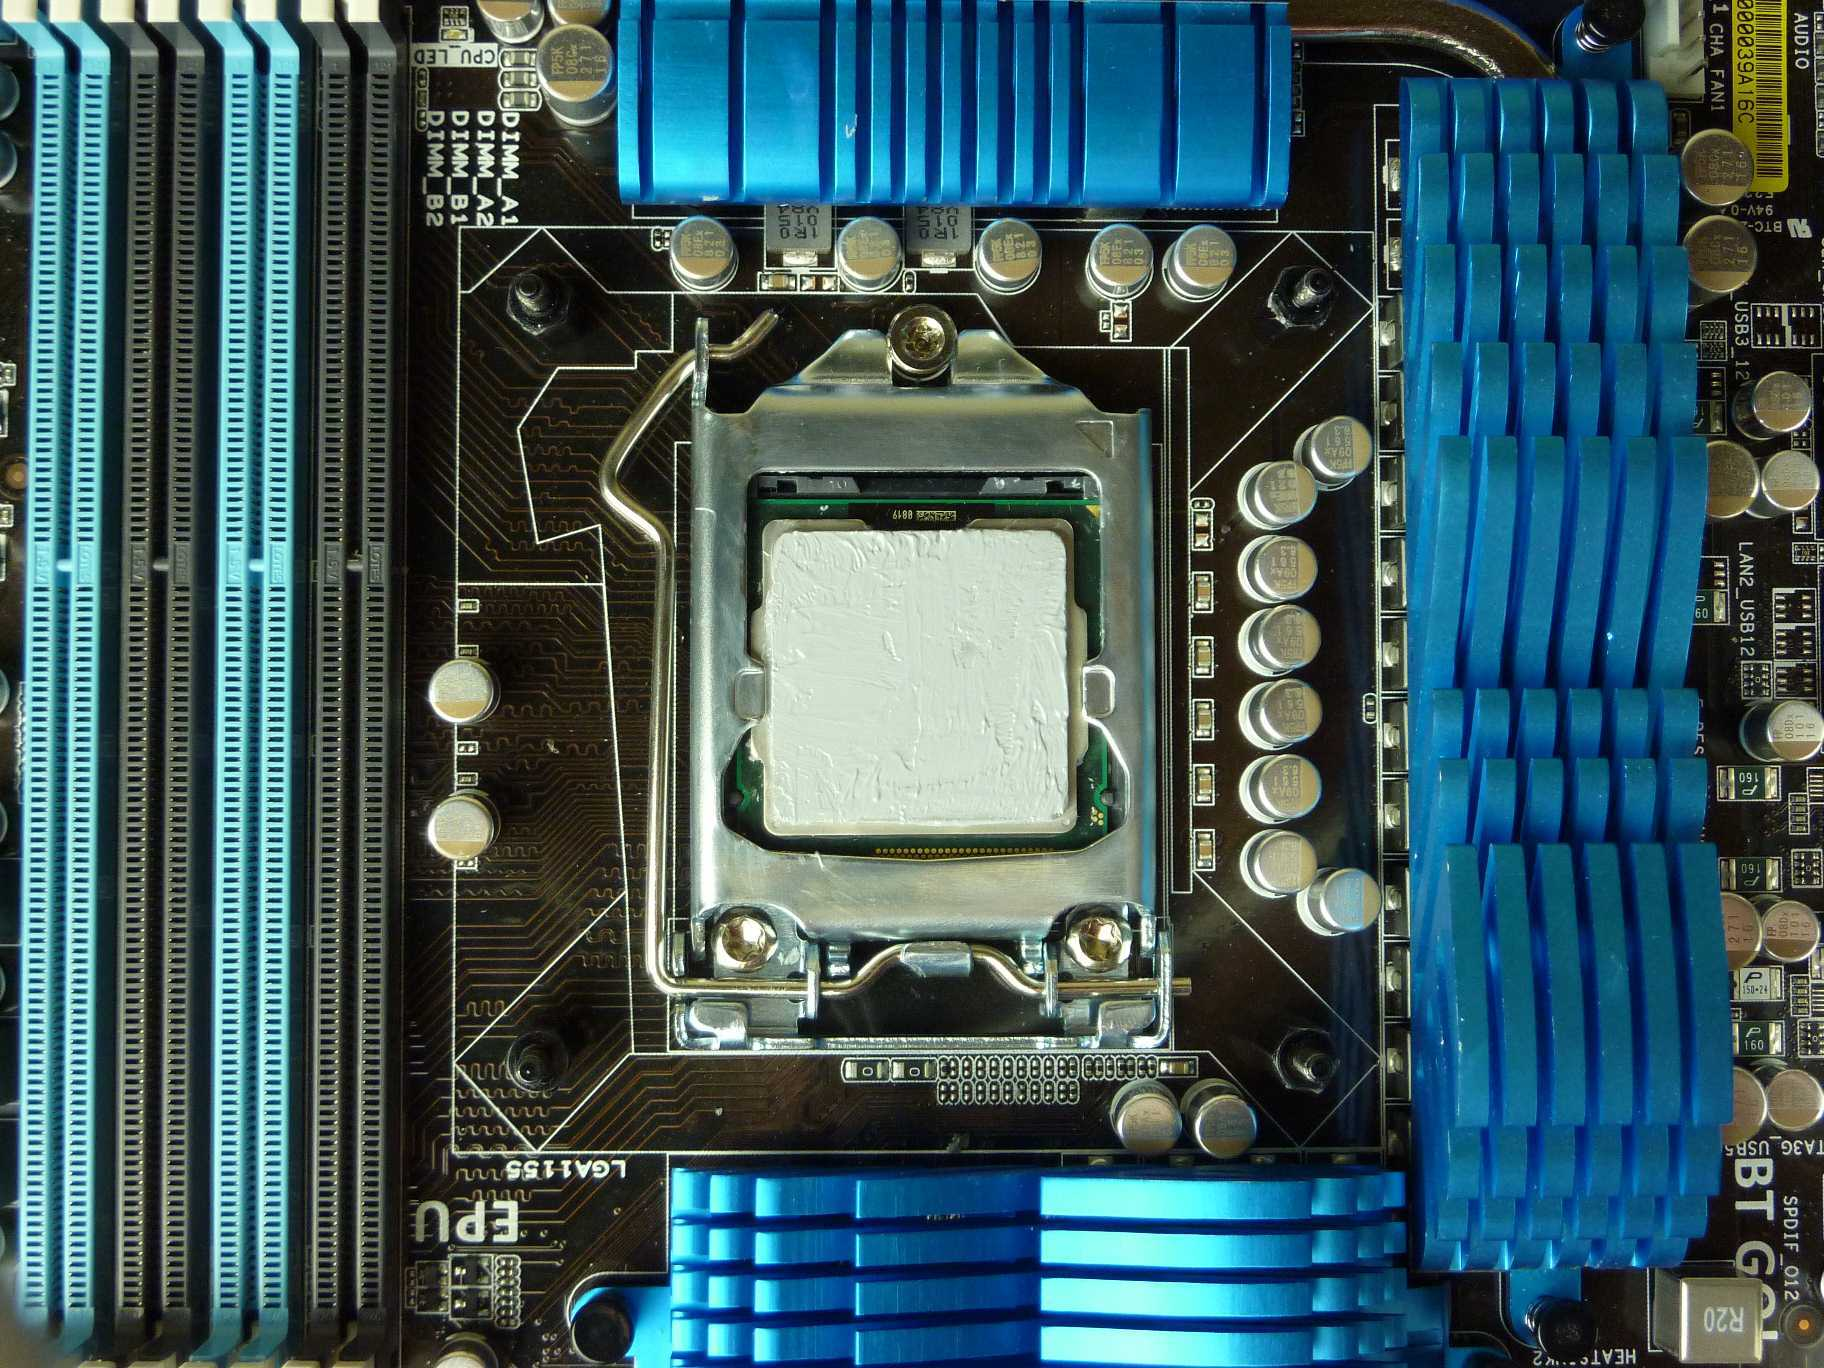 Thermal Paste smooth spread